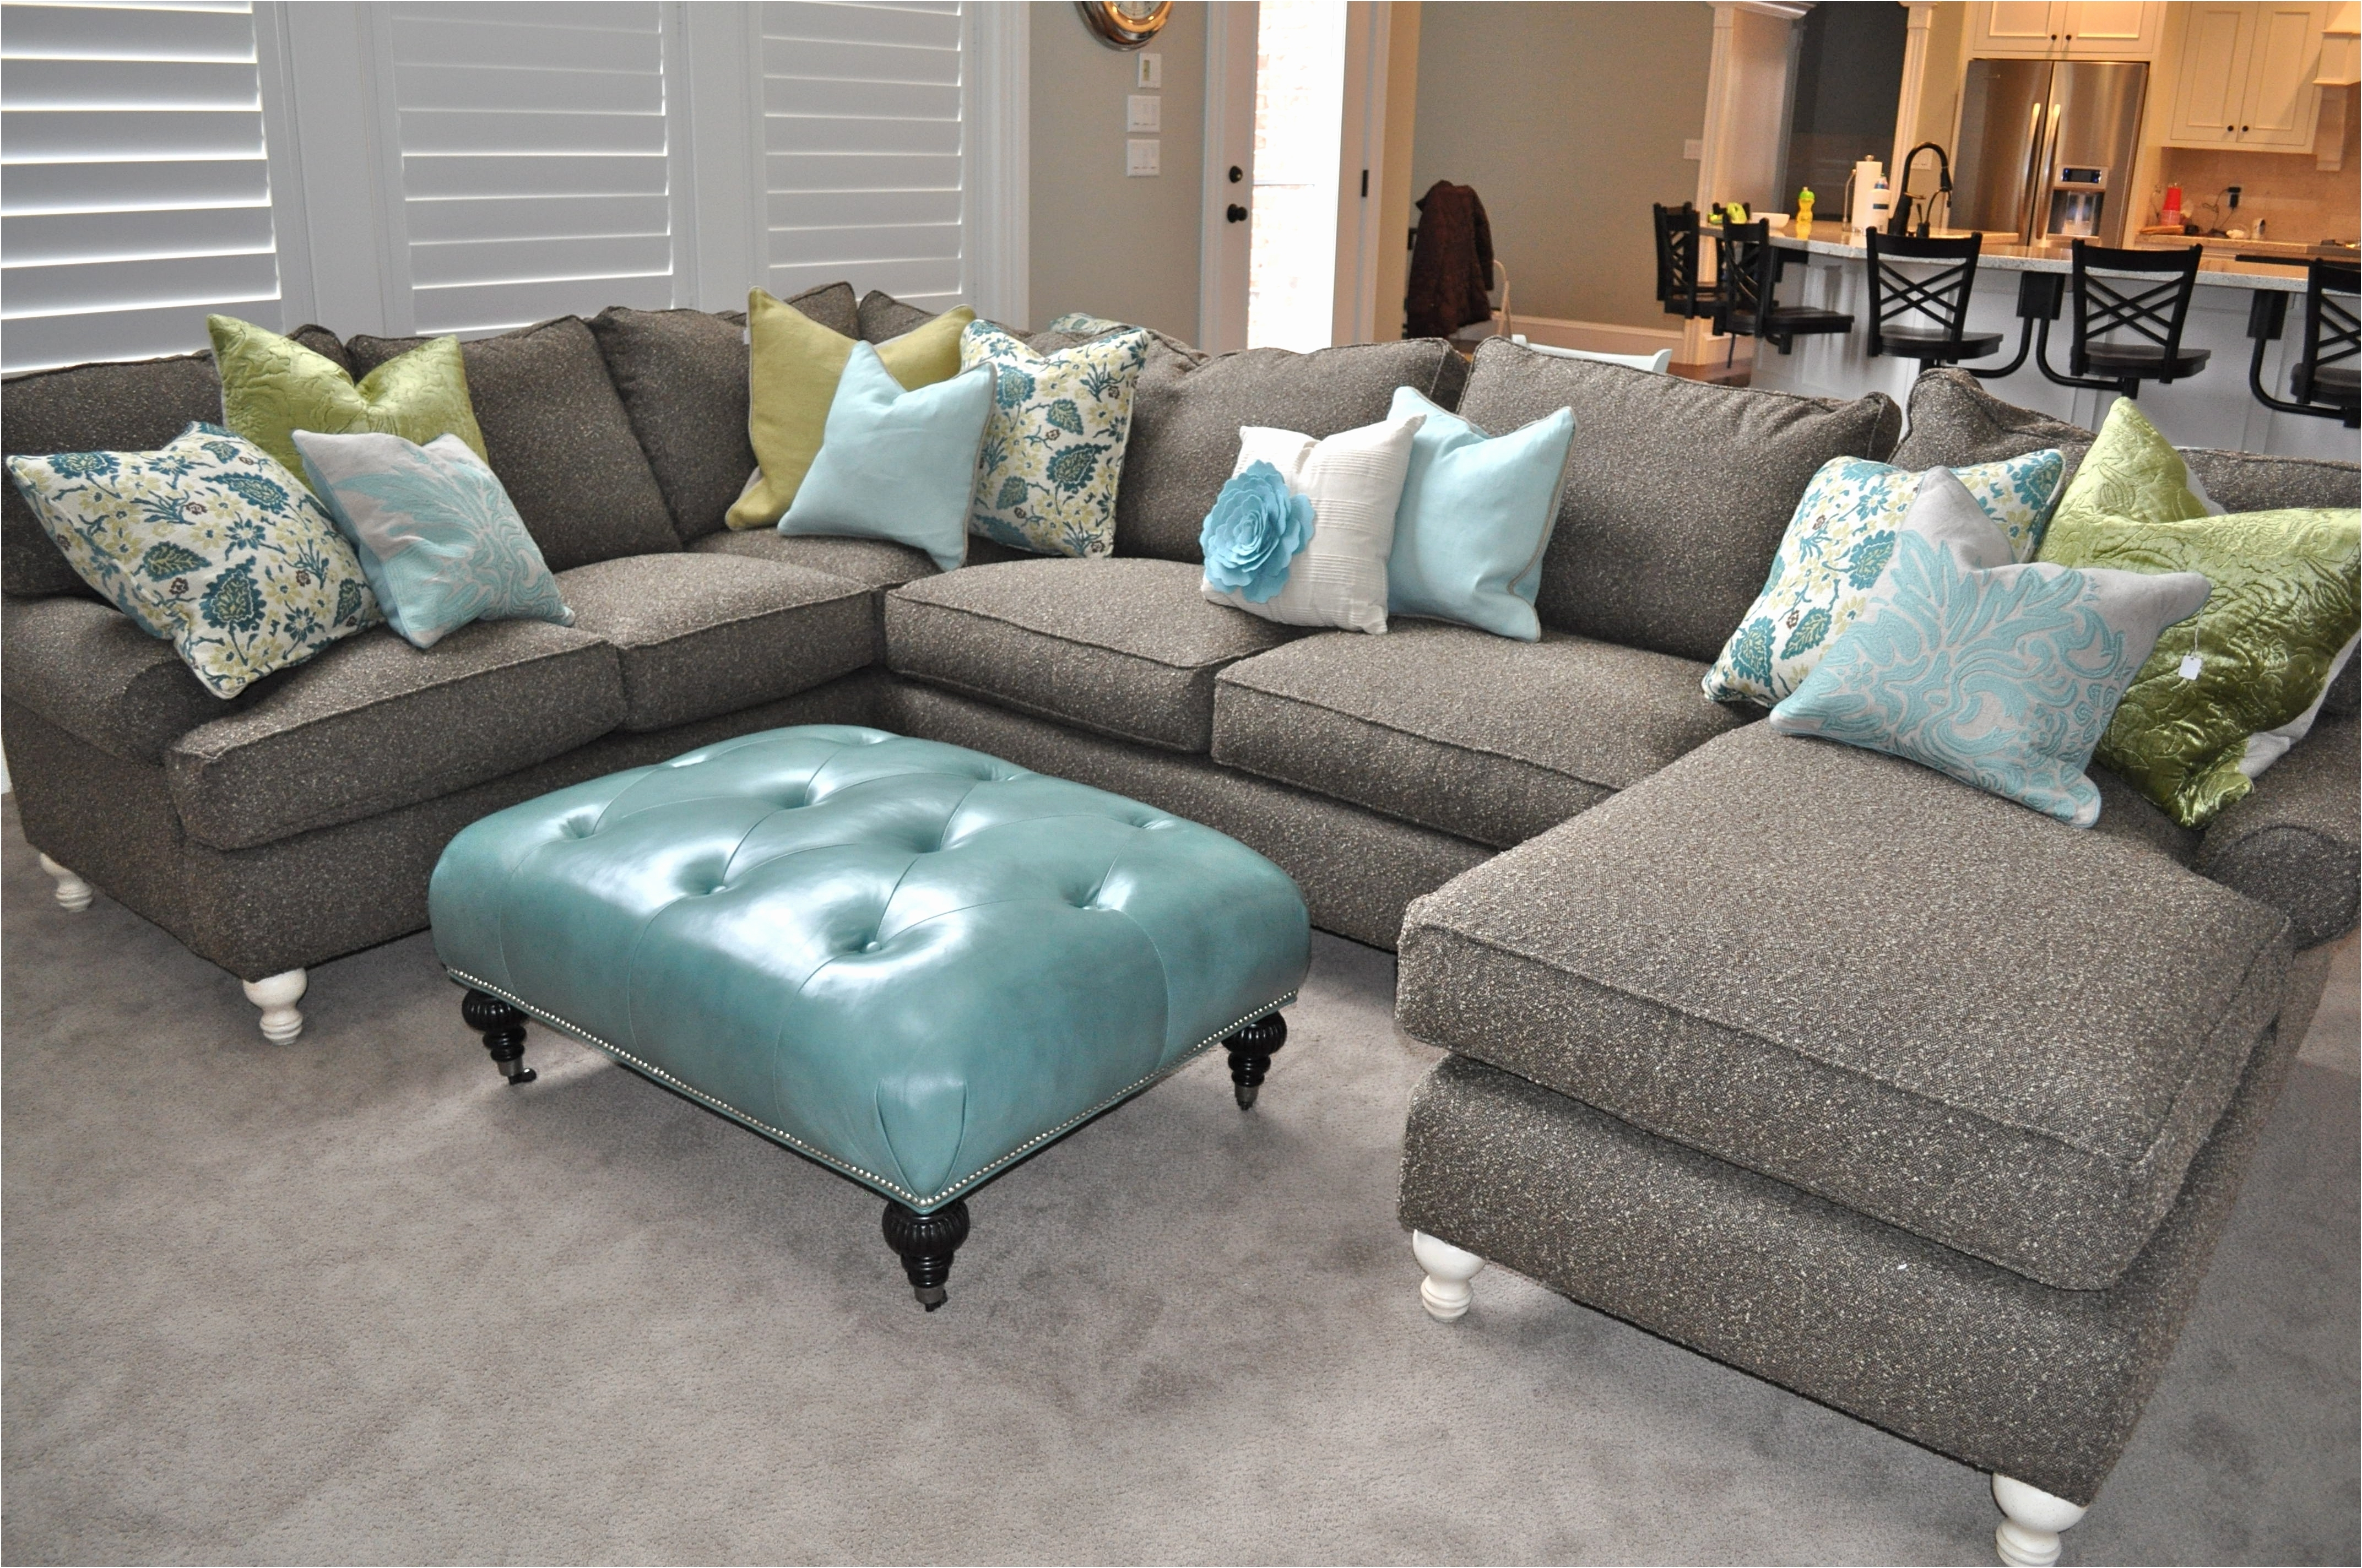 Down Sectional Couches Filled Sofa Feather Macys Canada Stunning As With Down Filled Sofas (View 9 of 10)